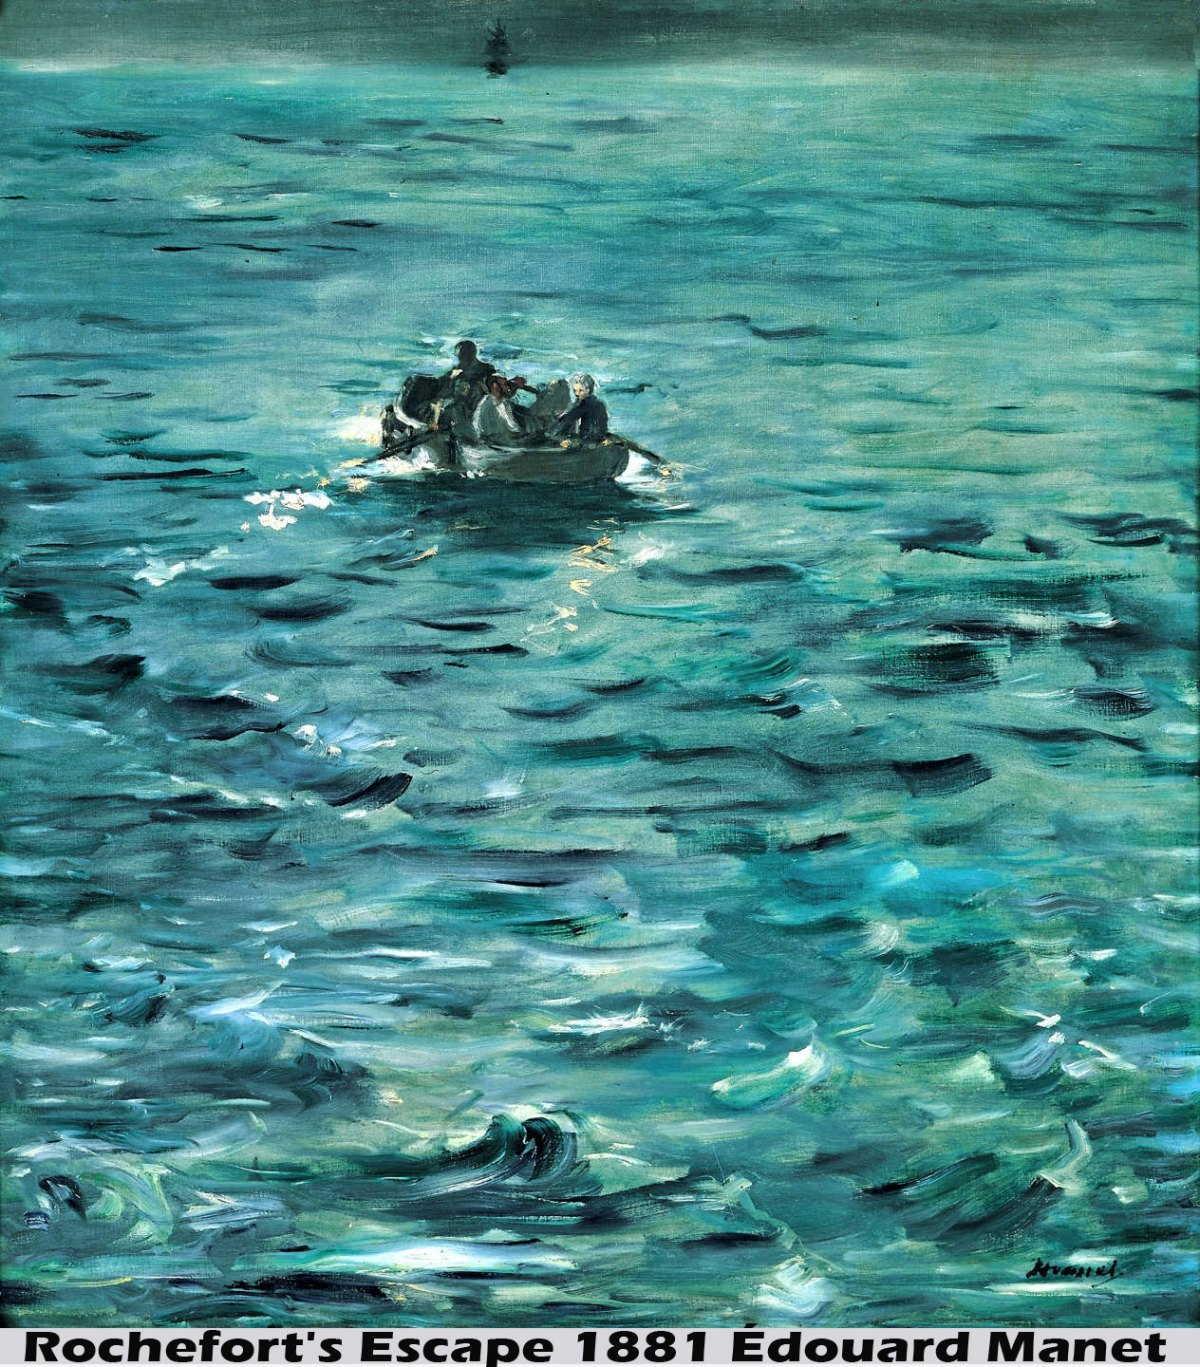 Rochefort's Escape by Édouard Manet